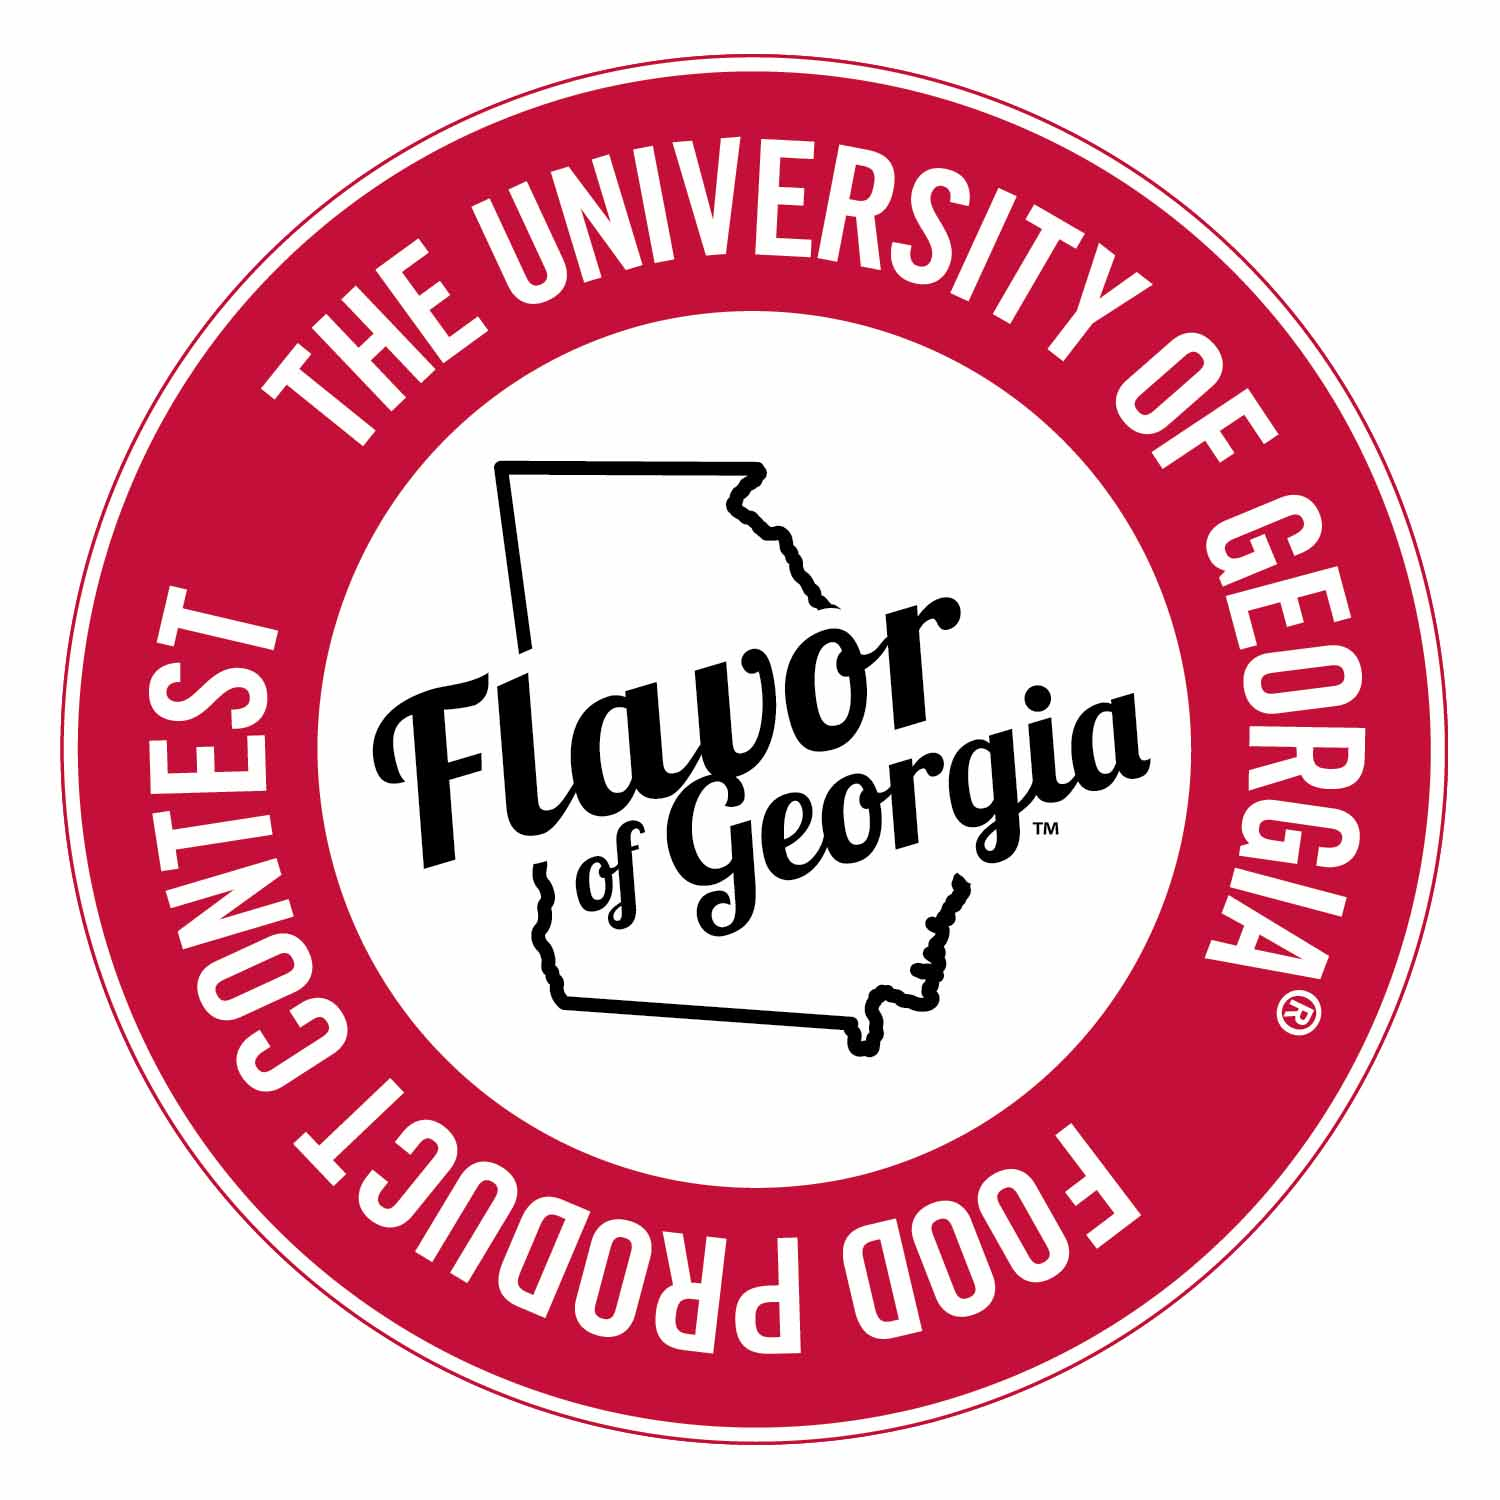 A team of food industry experts and grocery buyers selected 33 products to compete in the final round of the University of Georgia's 2016 Flavor of Georgia Food Product Contest. A record-breaking 135 products were entered into the contest this year in 11 categories.